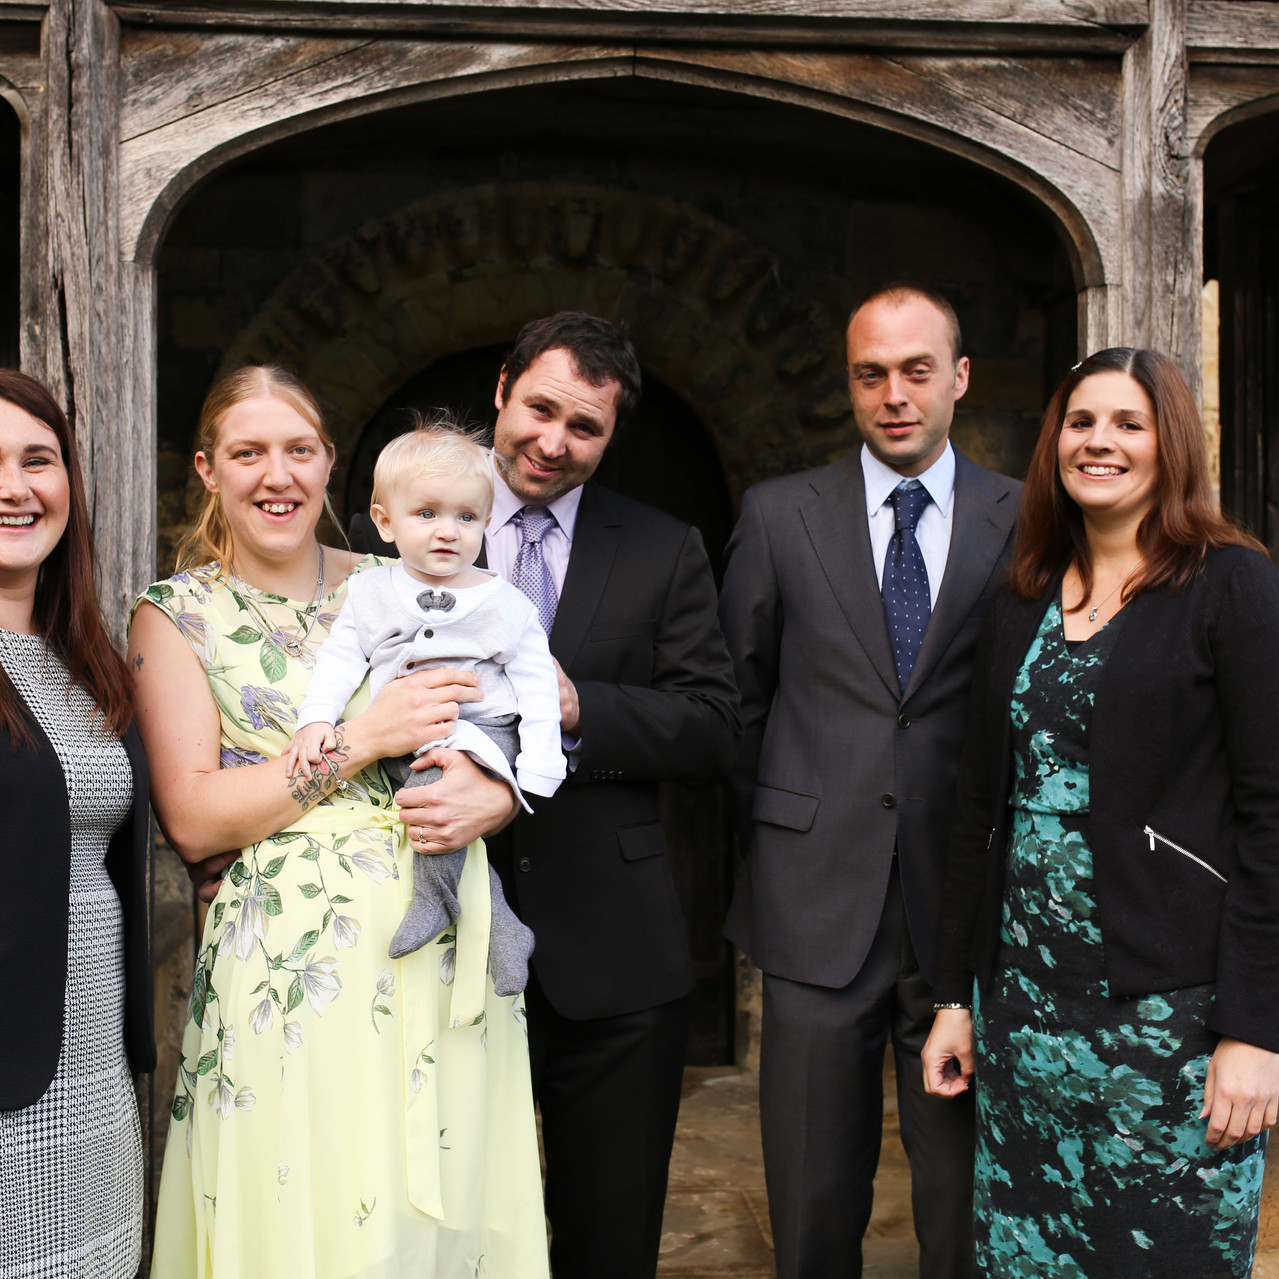 Charlie and his Godparents